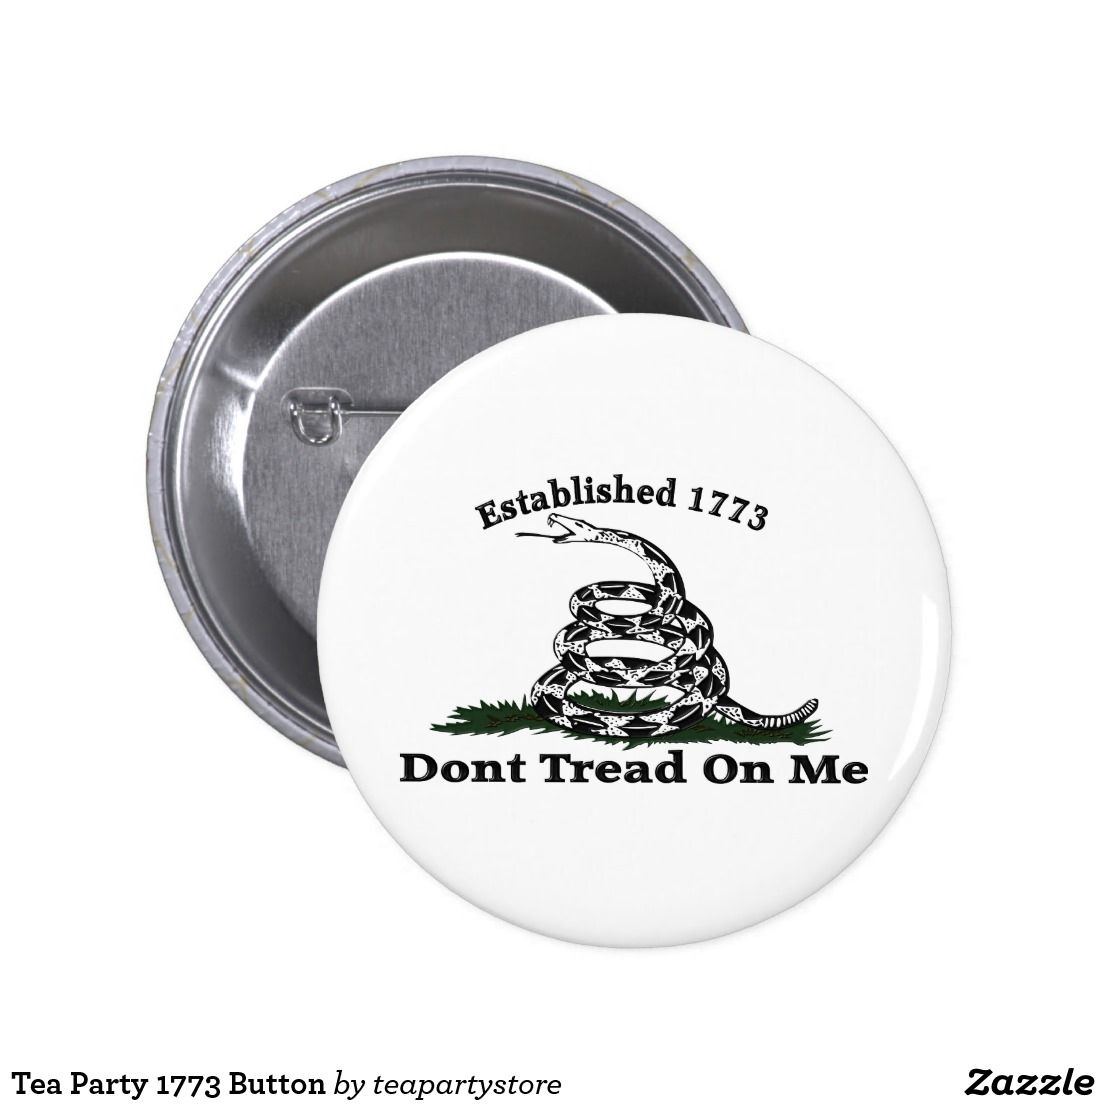 Tea Party 1773 Button